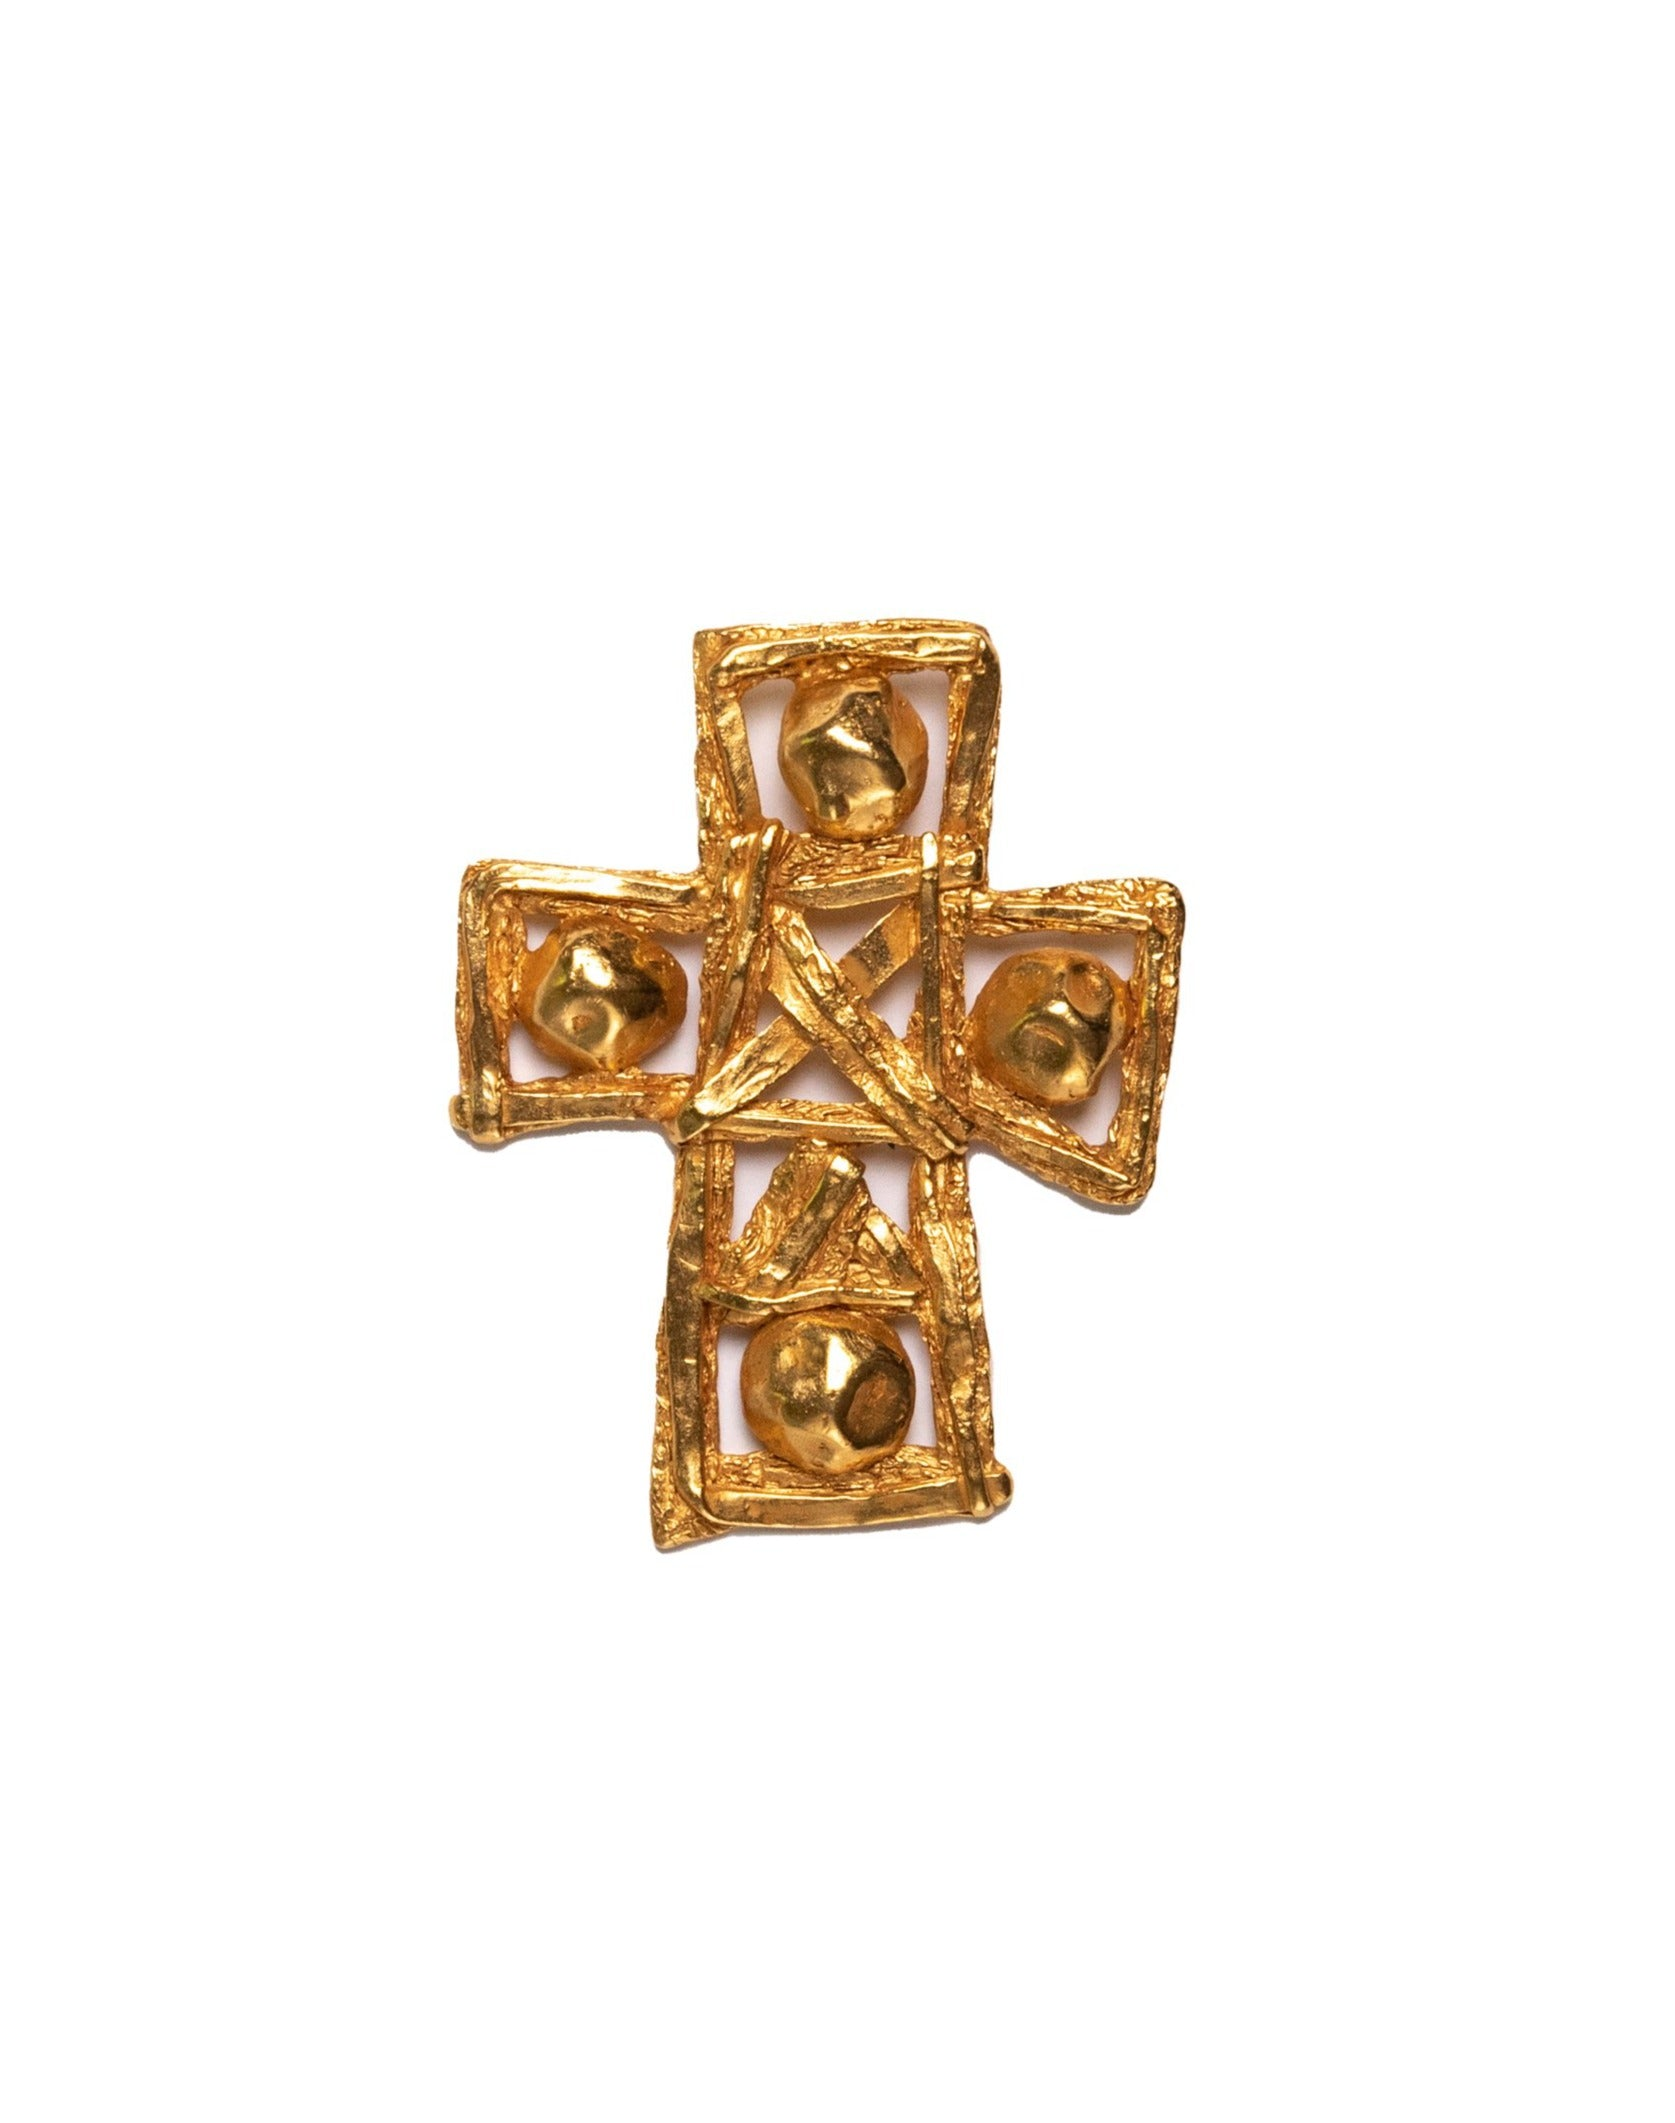 Christian Lacroix <br> 1994 huge sculptural gold cross pendant